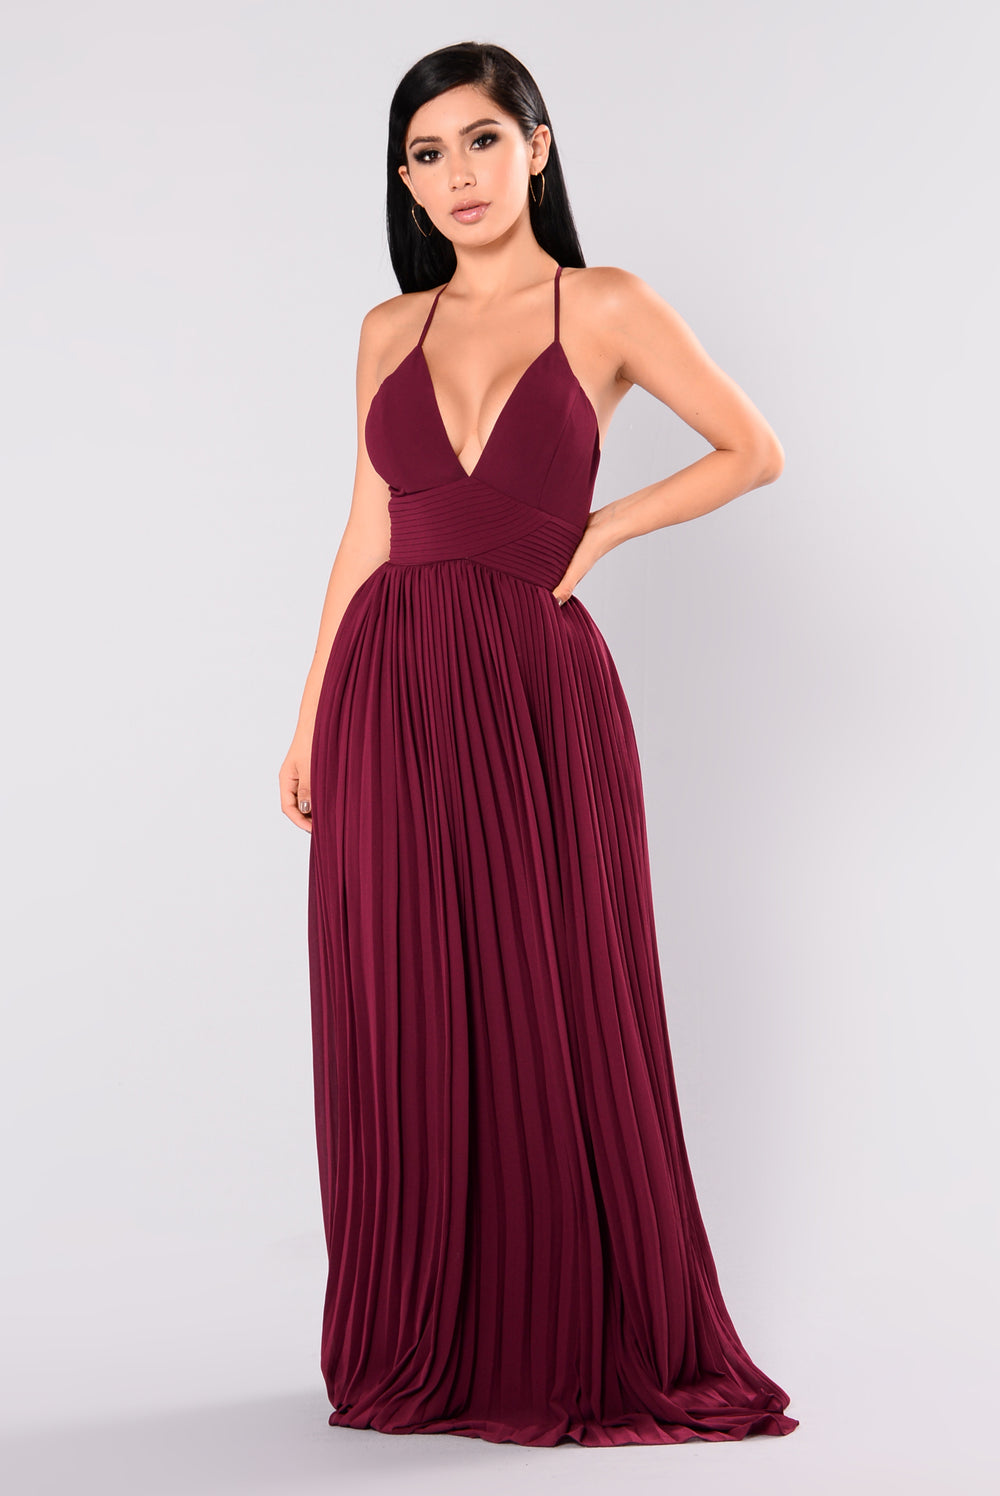 Lure Maxi Dress - Wine